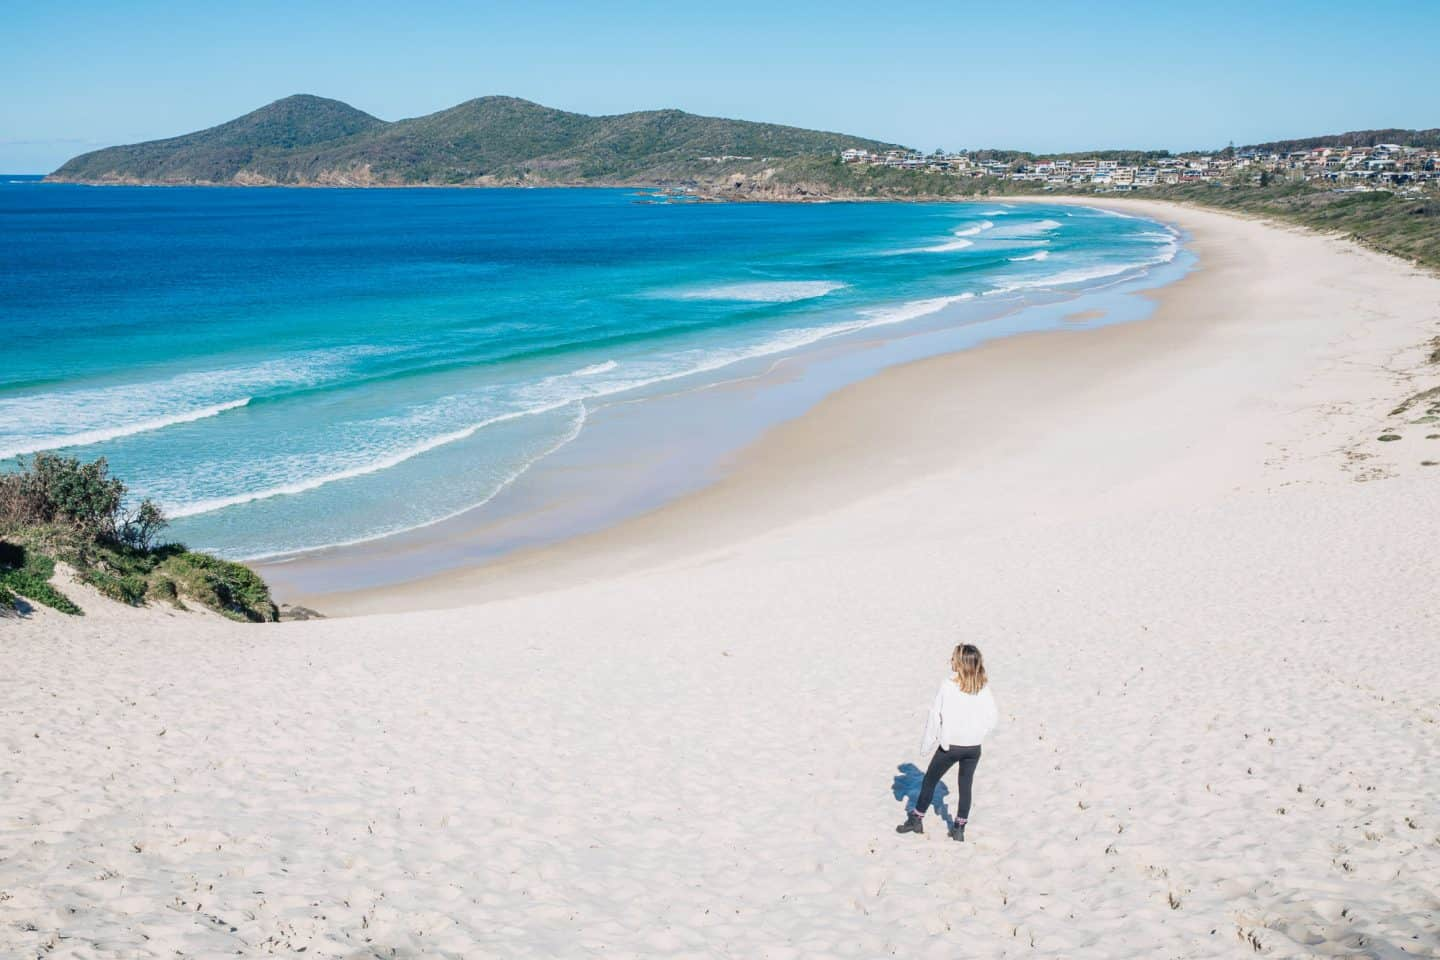 Forster nsw, things to do in forster, what to do in forster, things to do forster, camping in forster, beaches in forster, beaches at forster, one mile beach forster